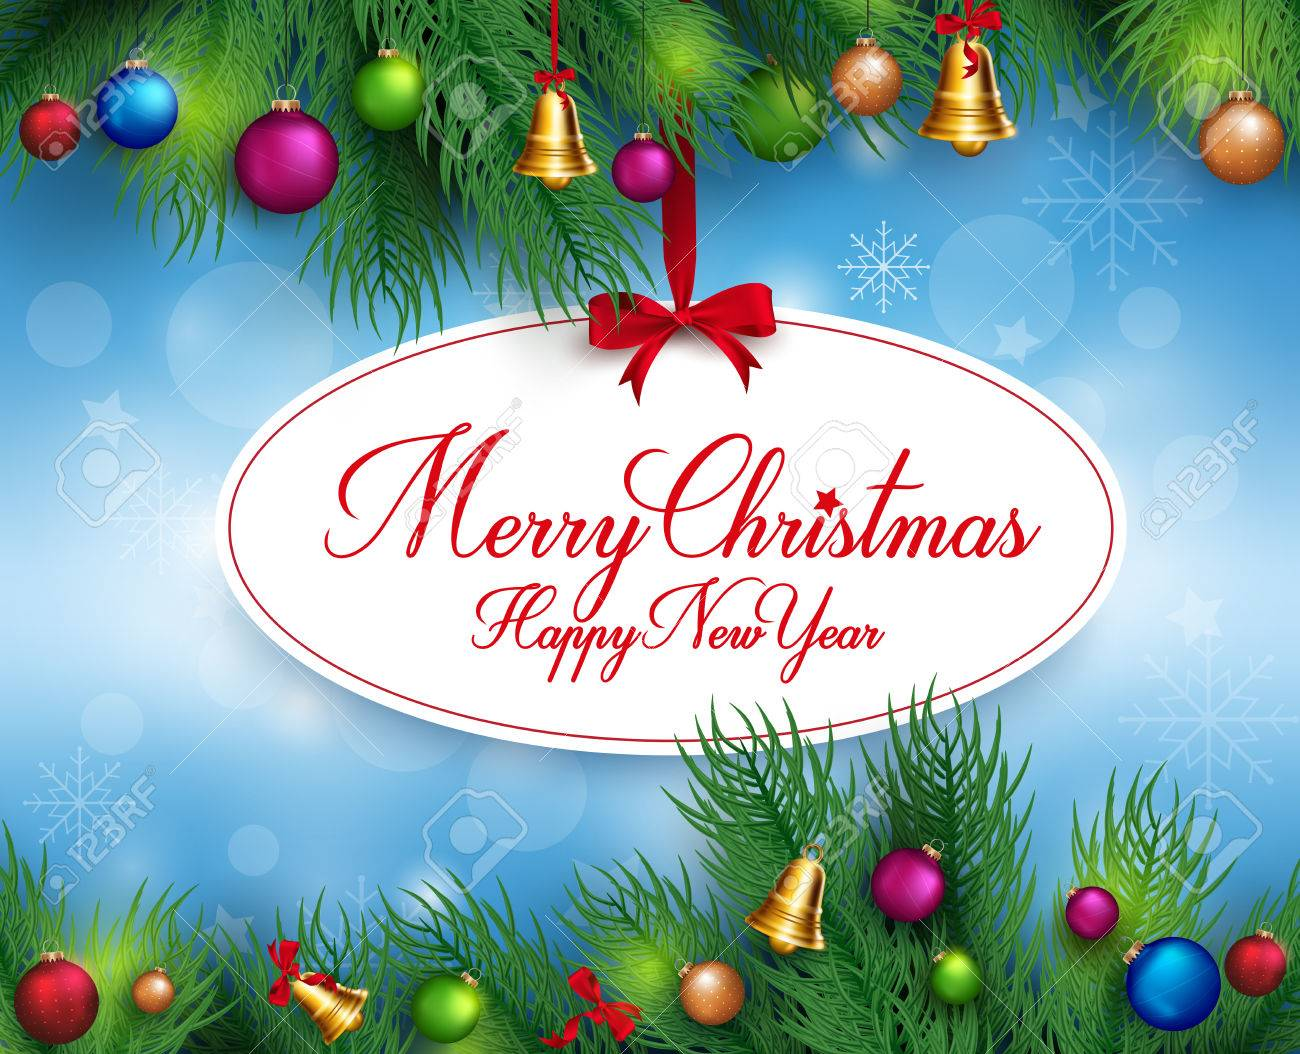 3d Realistic Merry Christmas Greetings Hanging With Pine Leaves